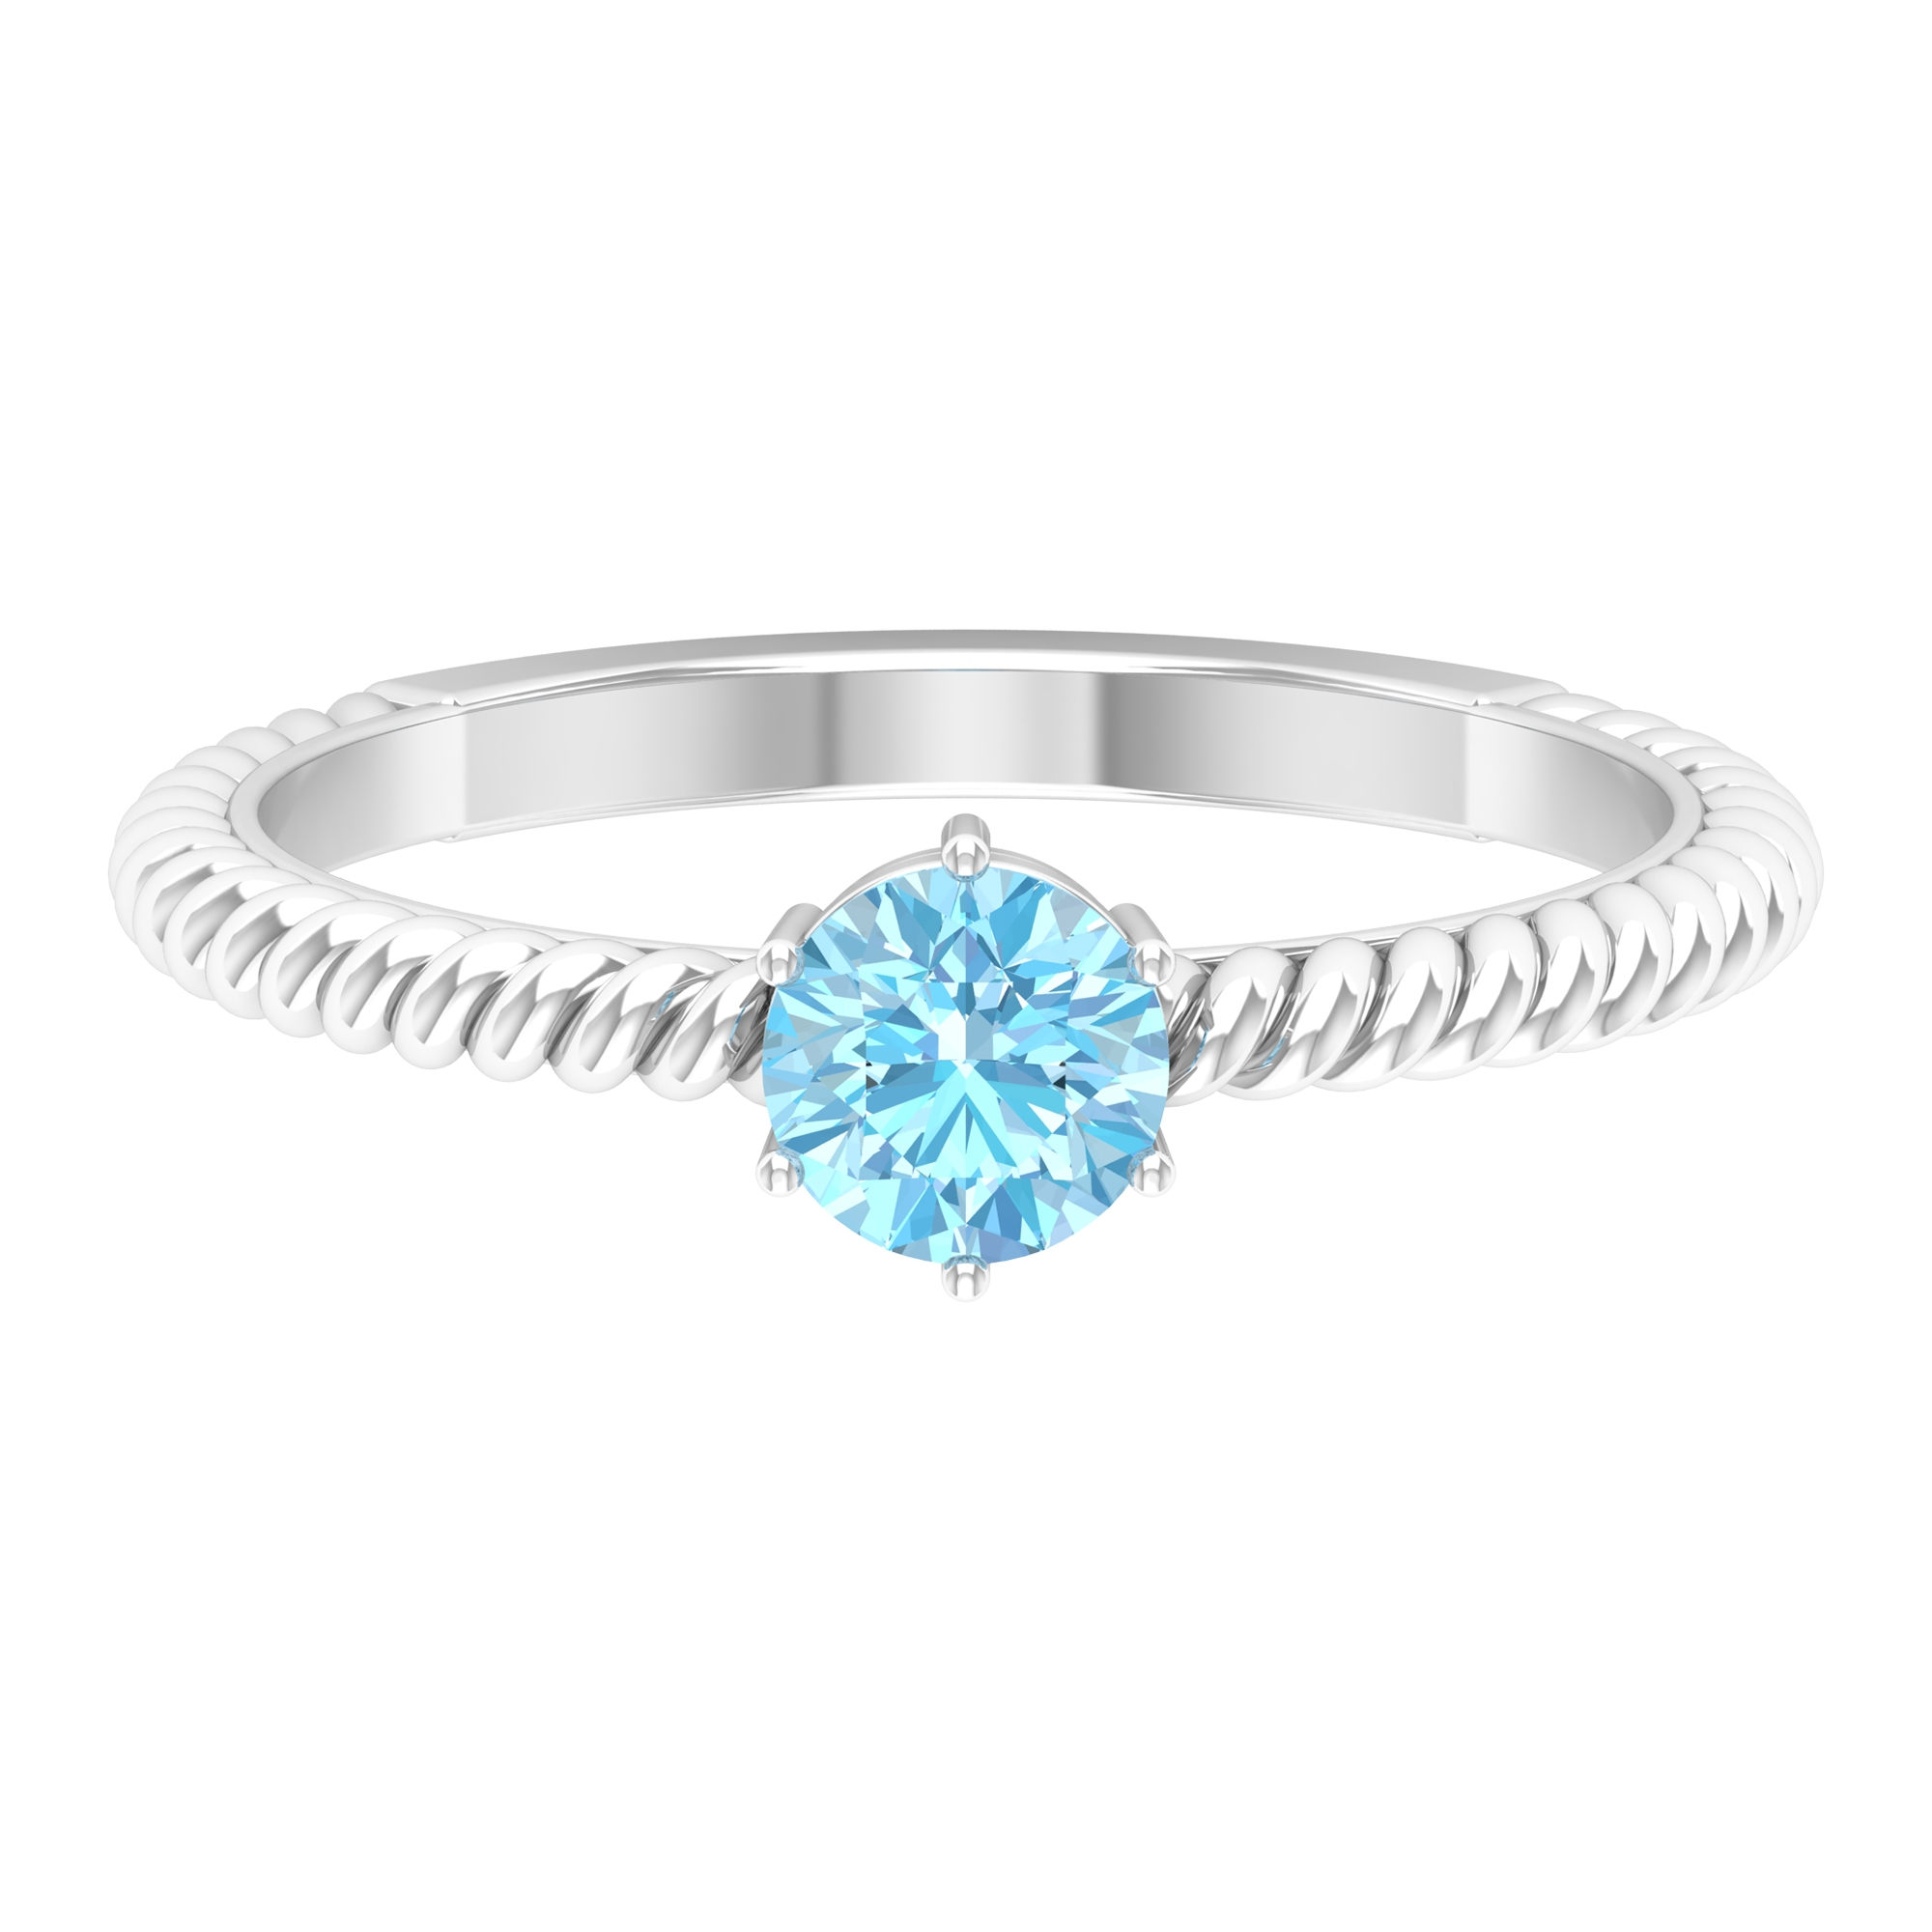 5 MM Six Prong Set Round Cut Aquamarine Solitaire Twisted Rope Ring